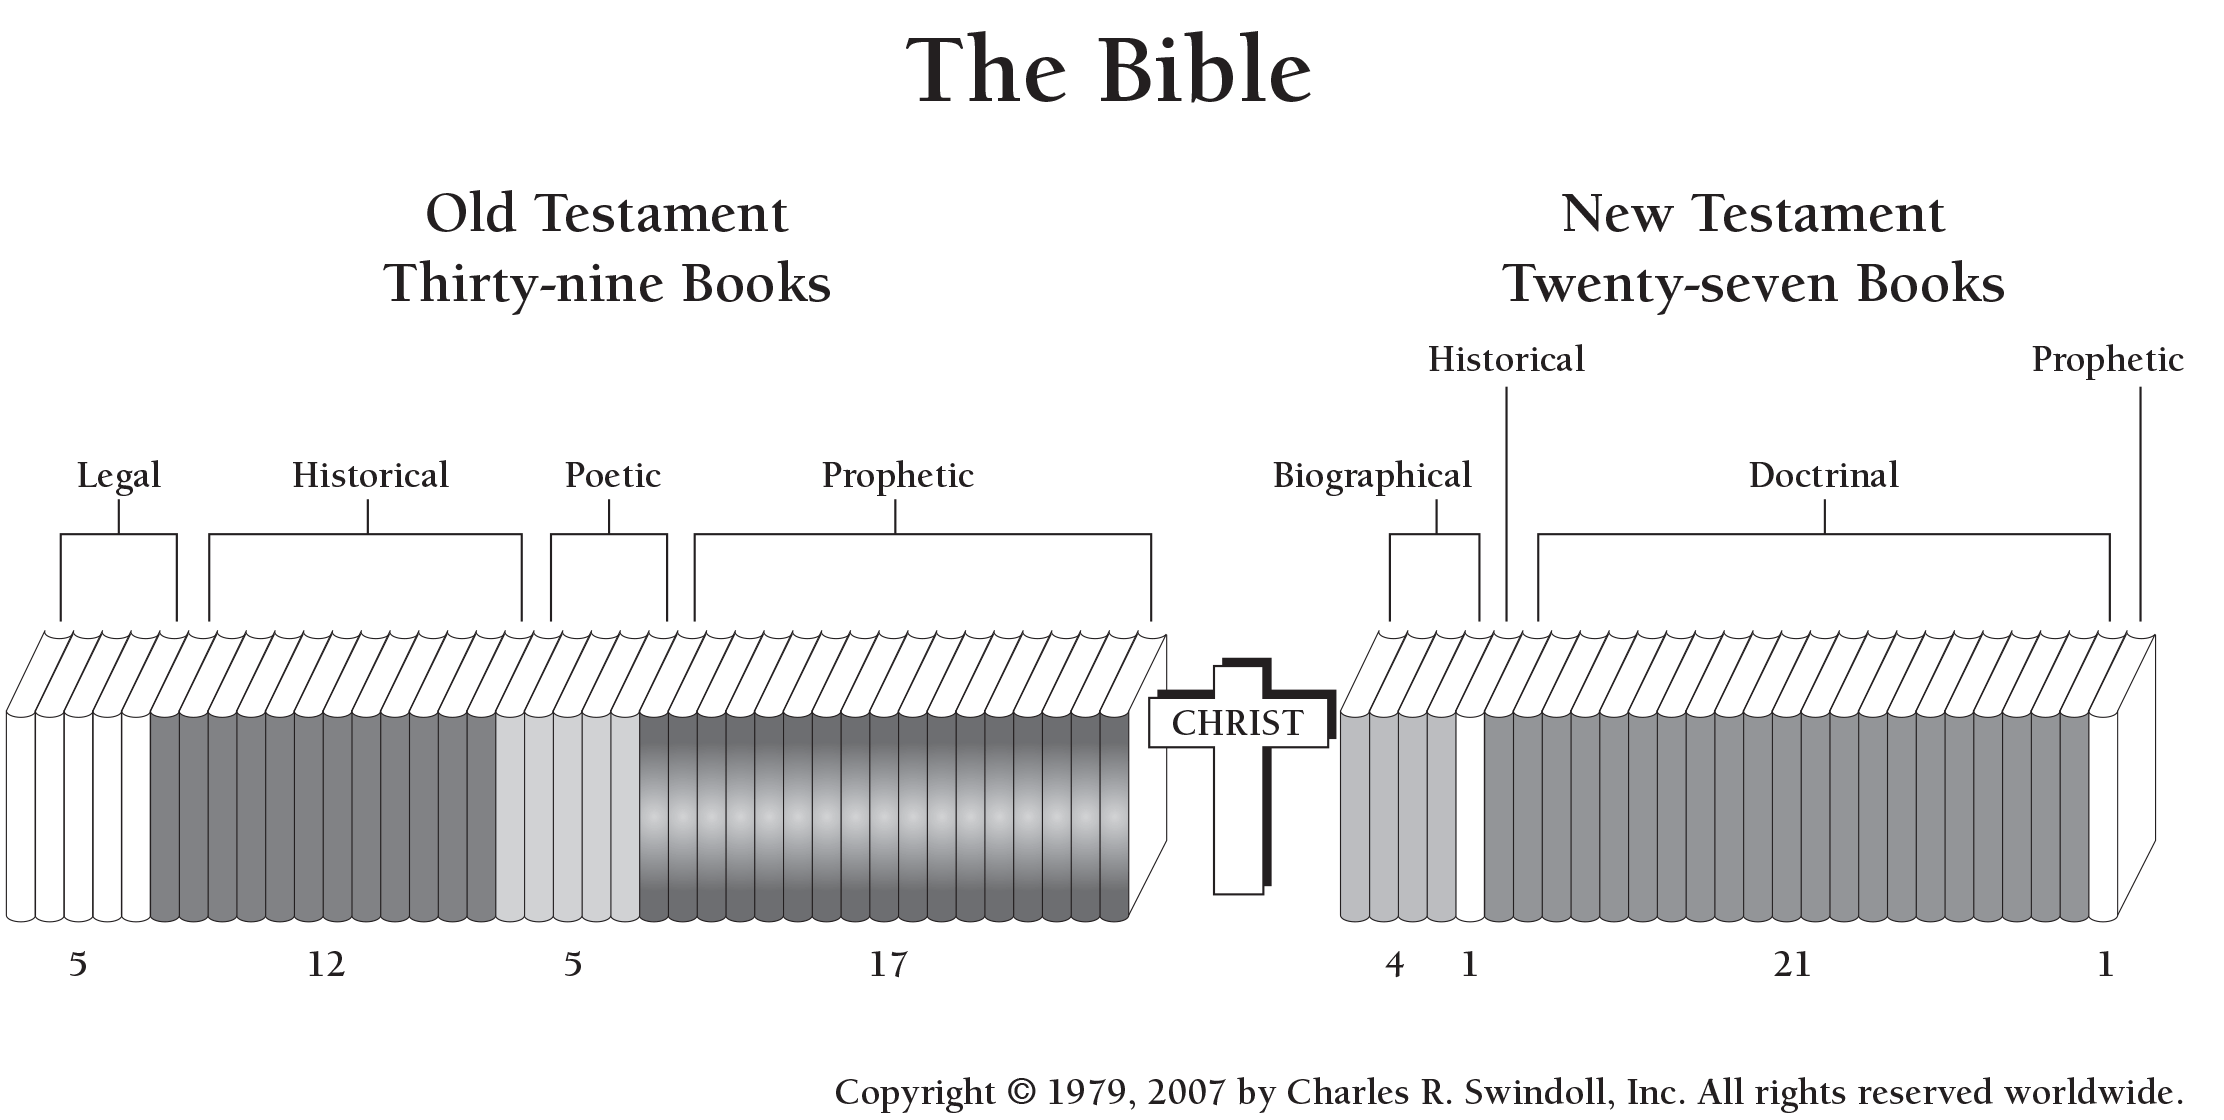 Overview Of The Bible